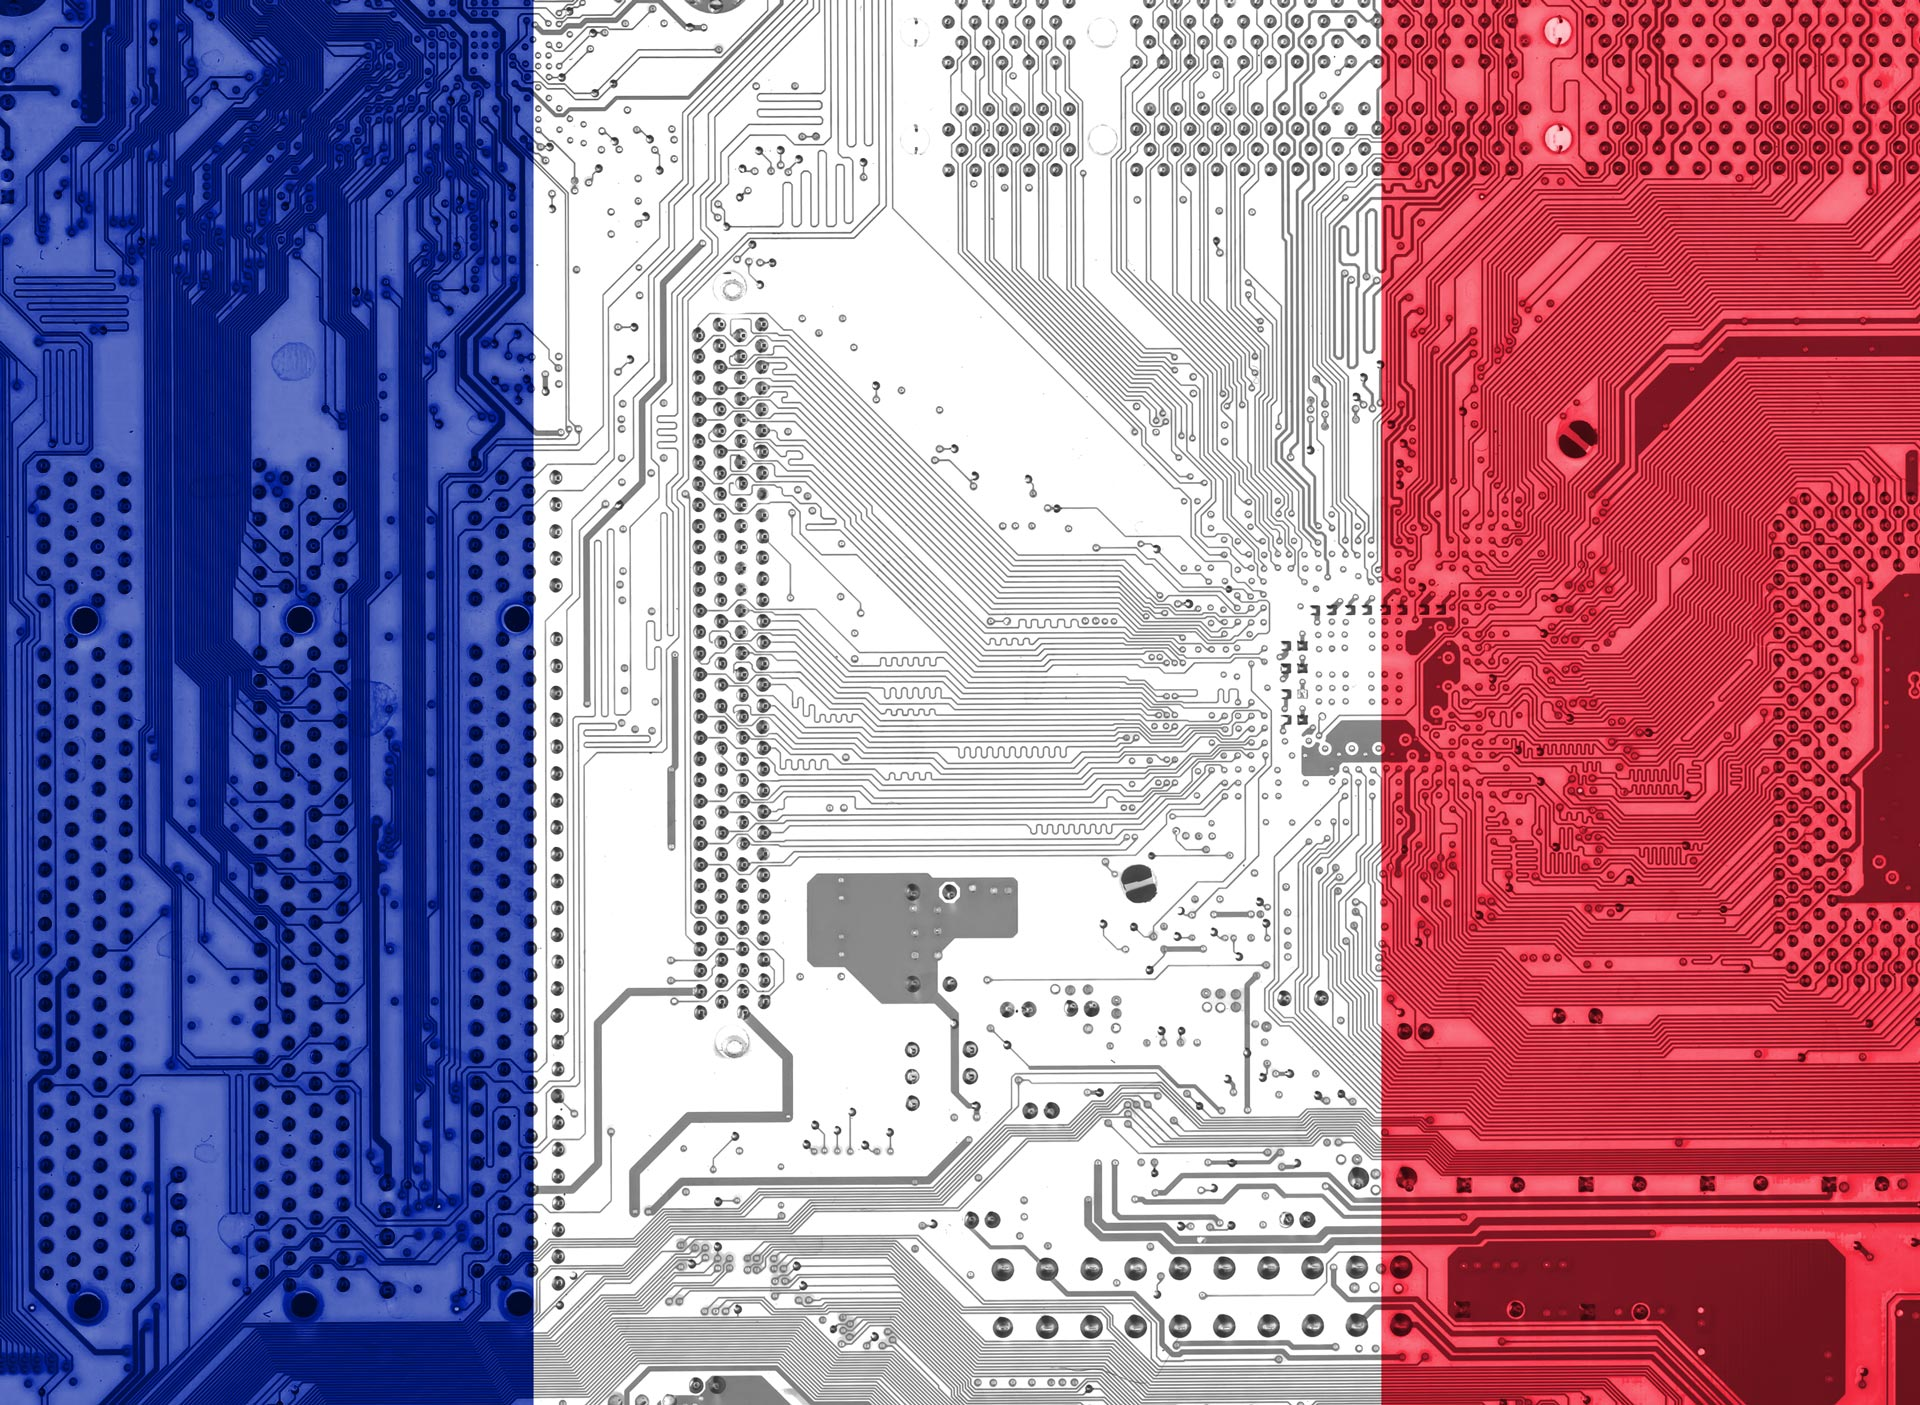 Entrepreneur is a French word: investigating the French tech ecosystem